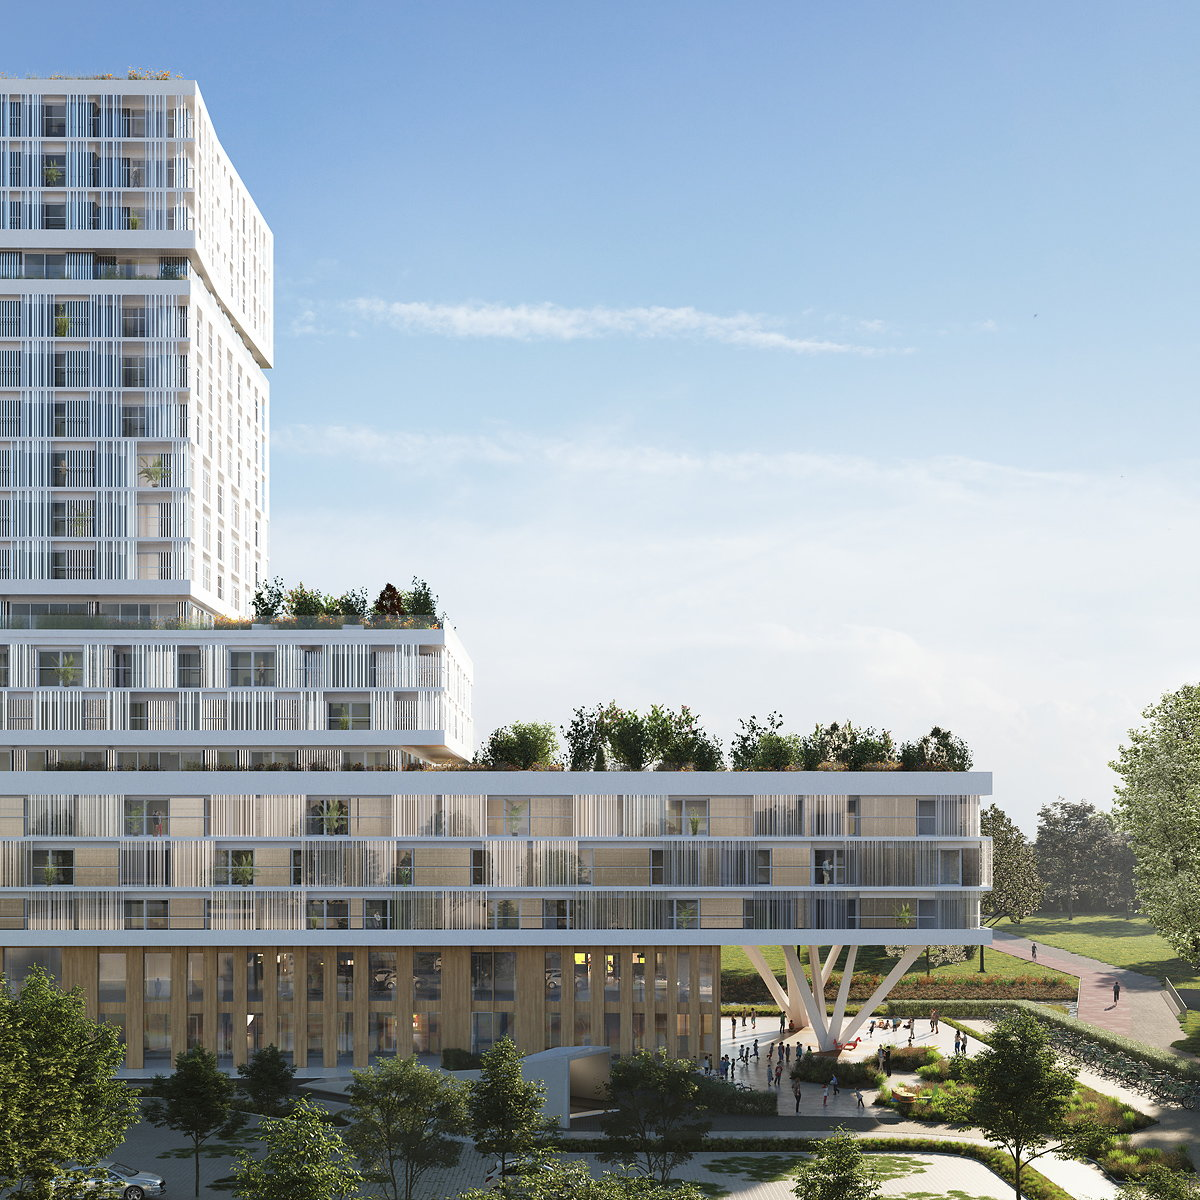 Orange Architects Designs All-in-One School and 190 Apartments in Amsterdam